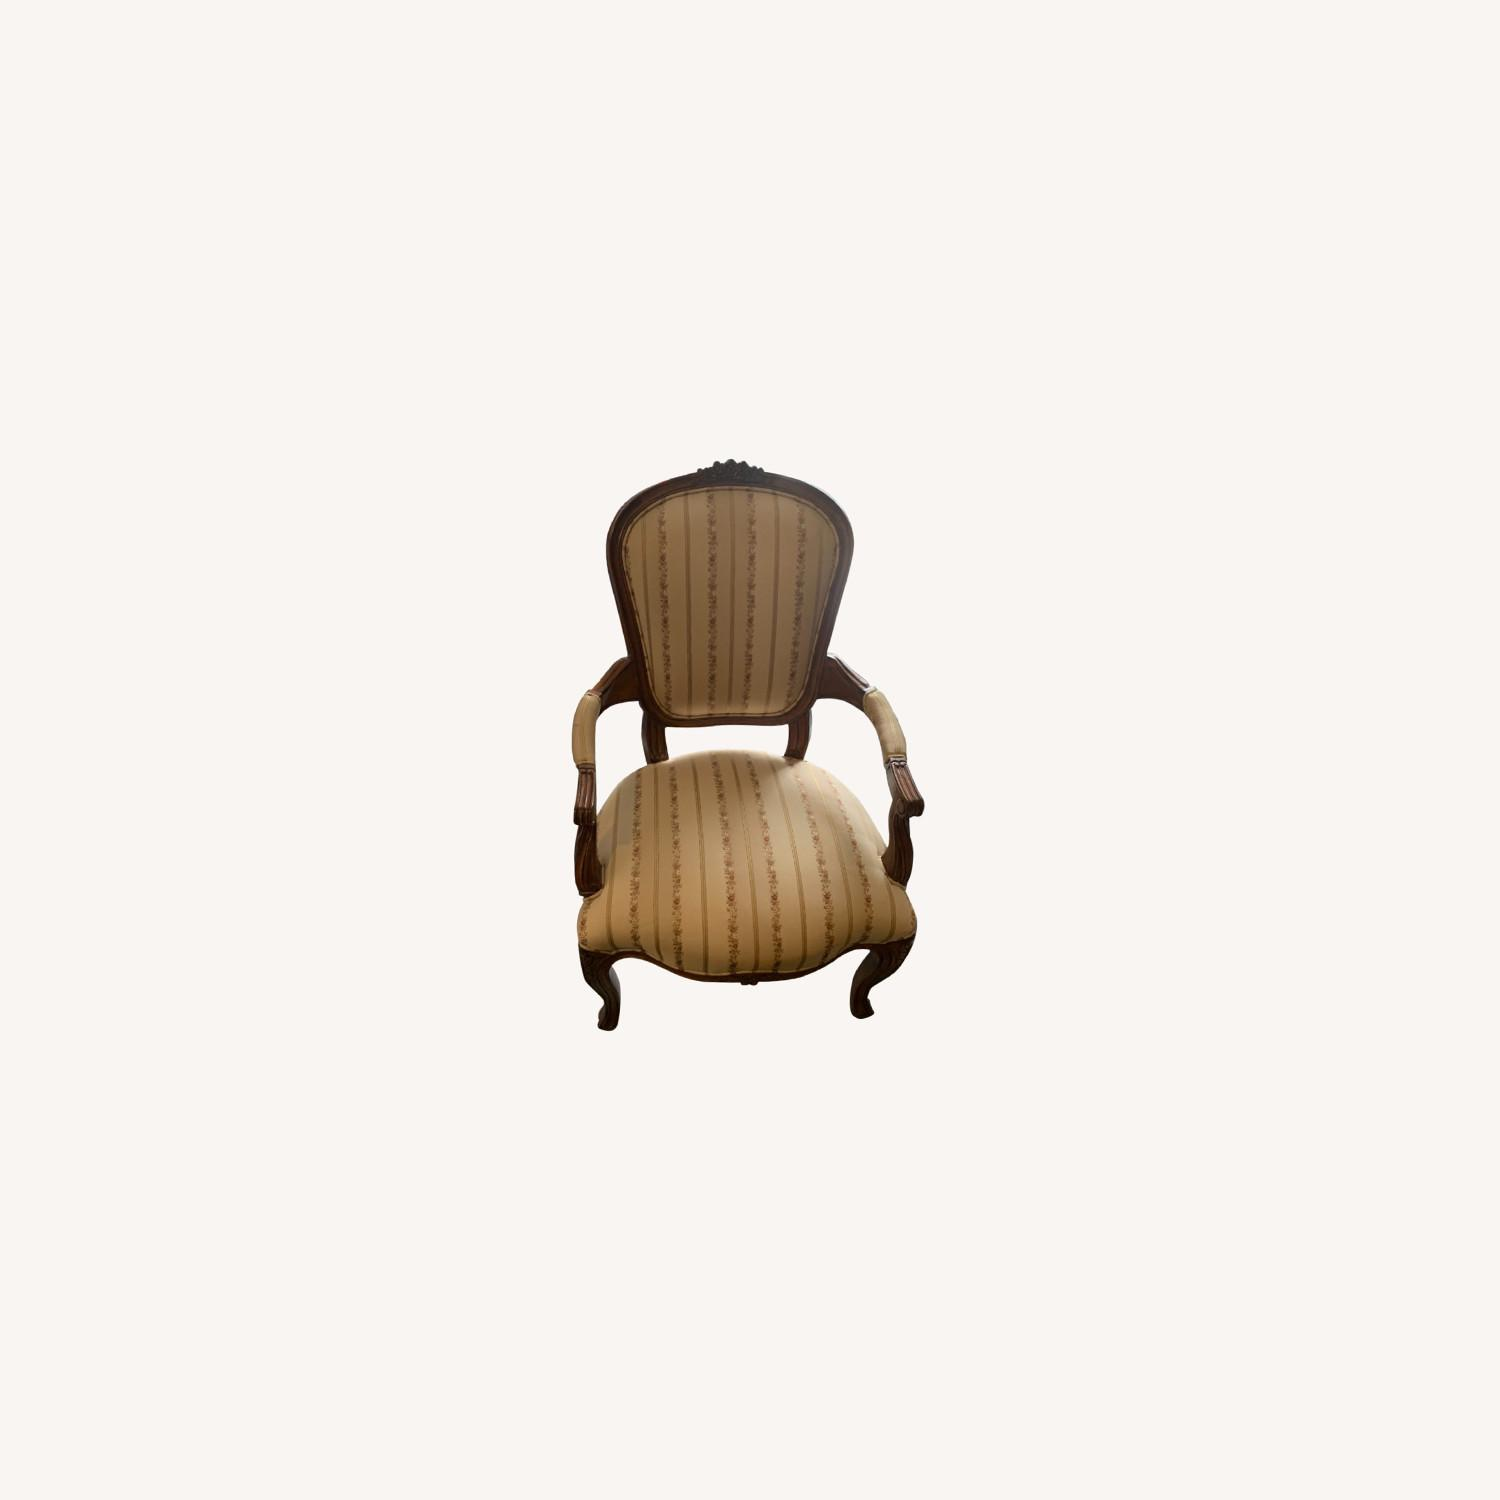 Ethan Allen Living Room Chairs - image-0